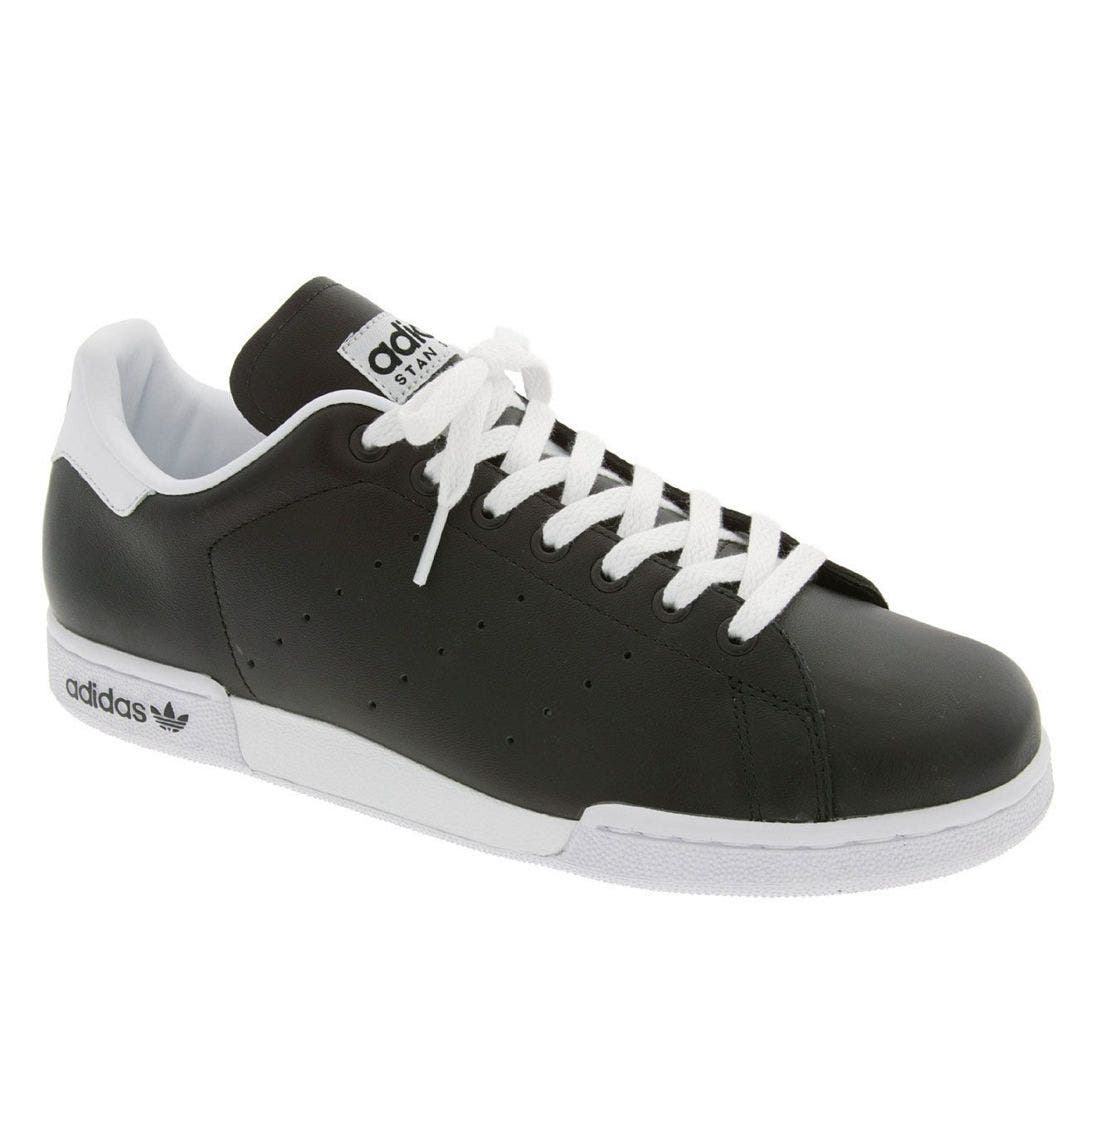 Main Image - adidas \u0027Stan Smith Supreme\u0027 Athletic Shoe. \u0027